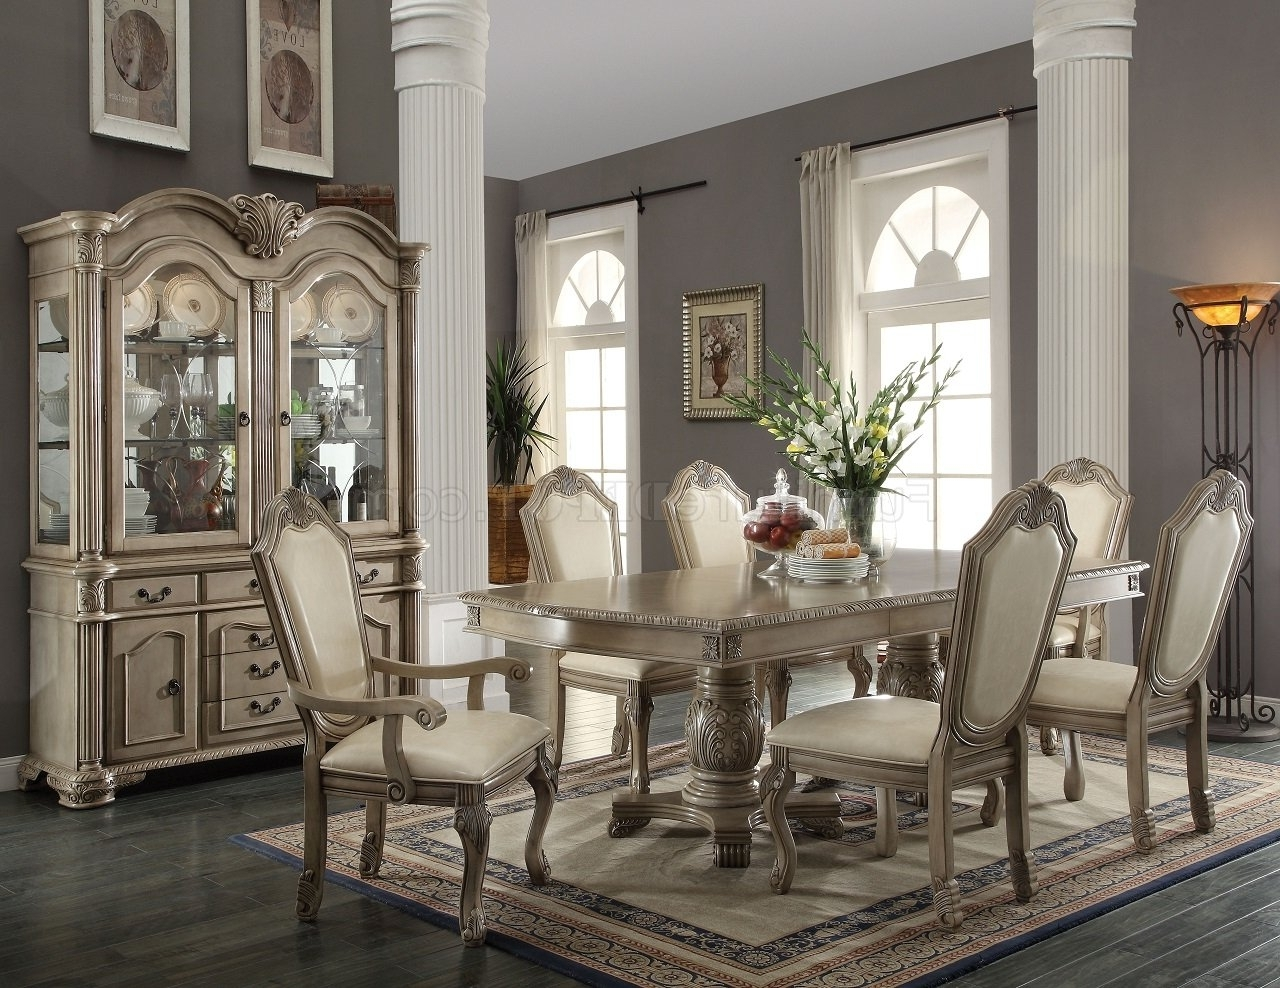 2018 Formal Dining Room Furniture: Dining Room Sets Pertaining To Cream Lacquer Dining Tables (View 22 of 25)